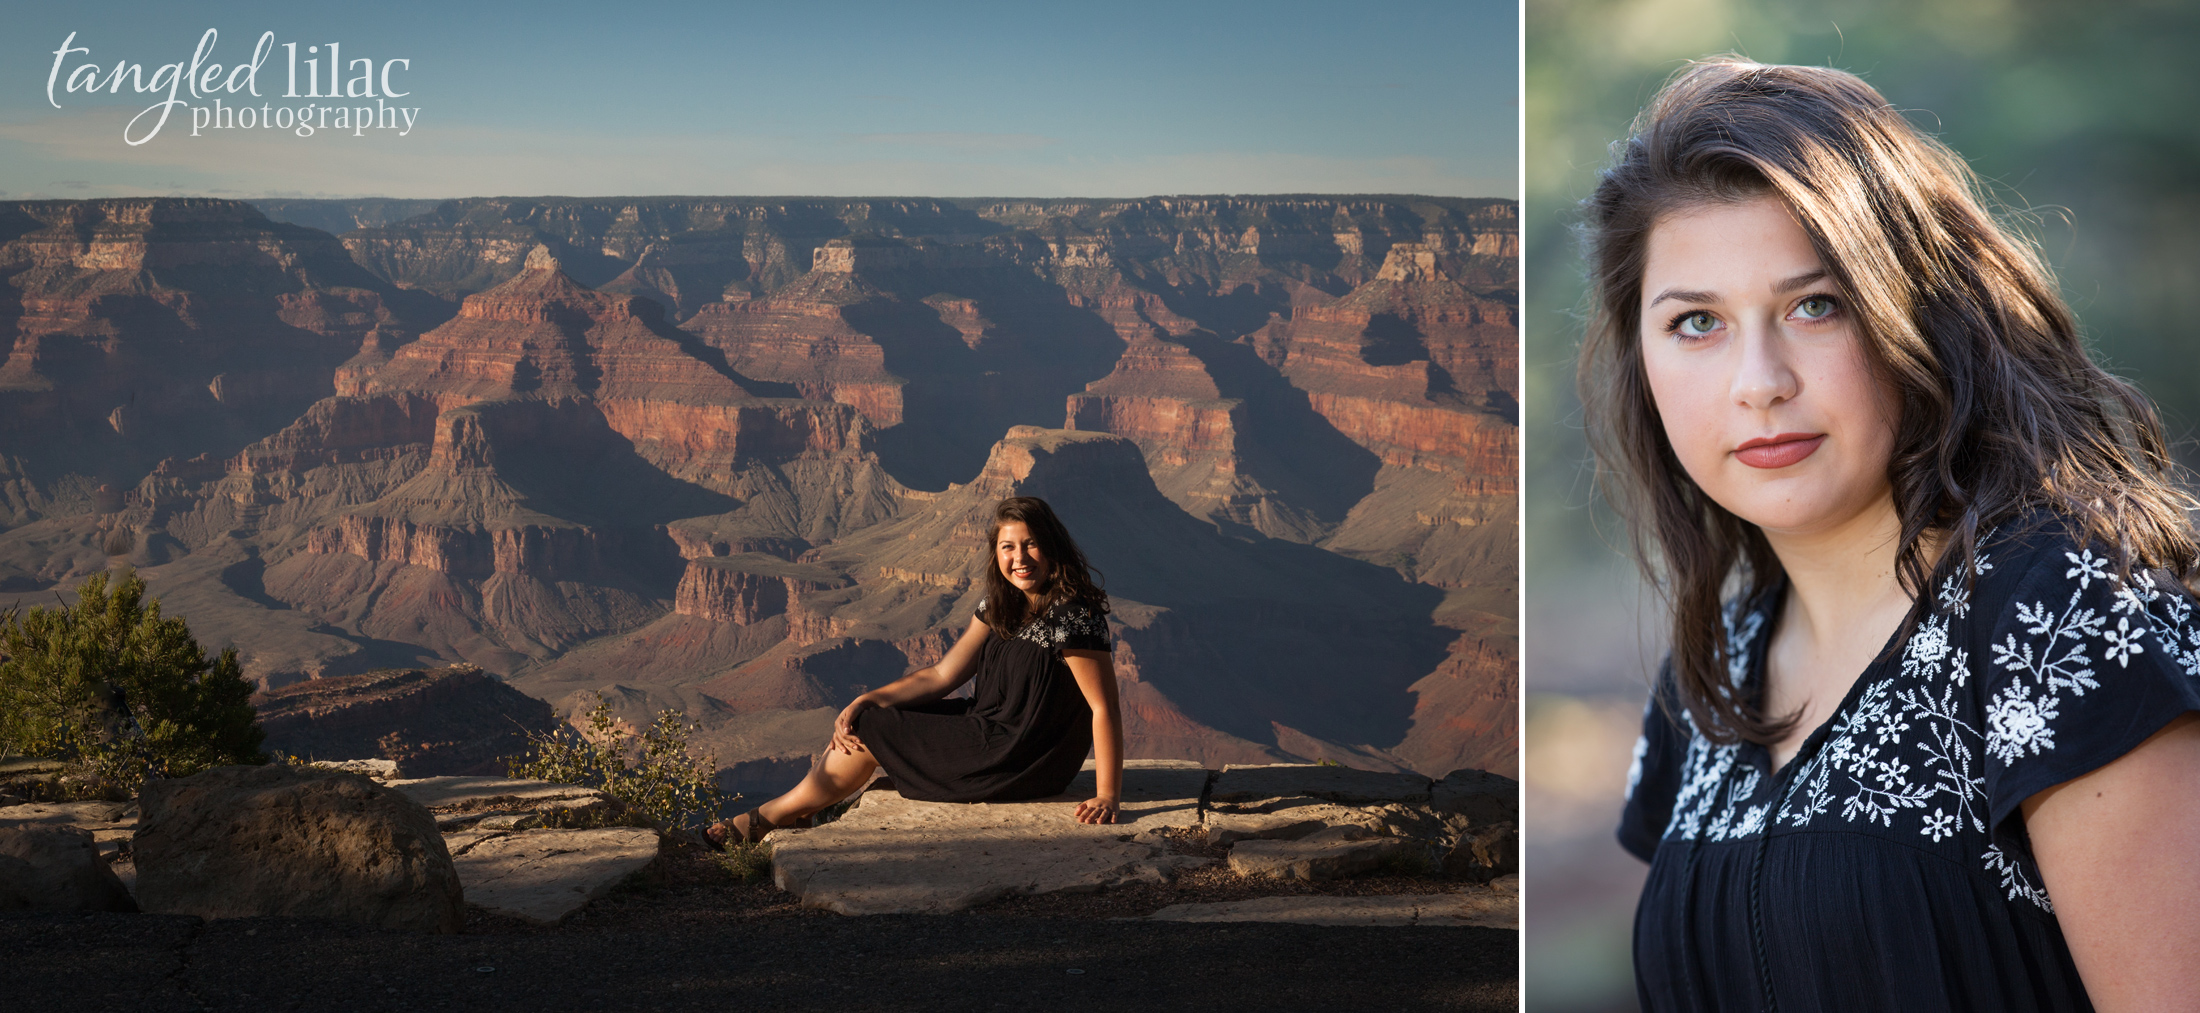 atlanta-grand-canyon-high-school-senior-arizona-flagstaff